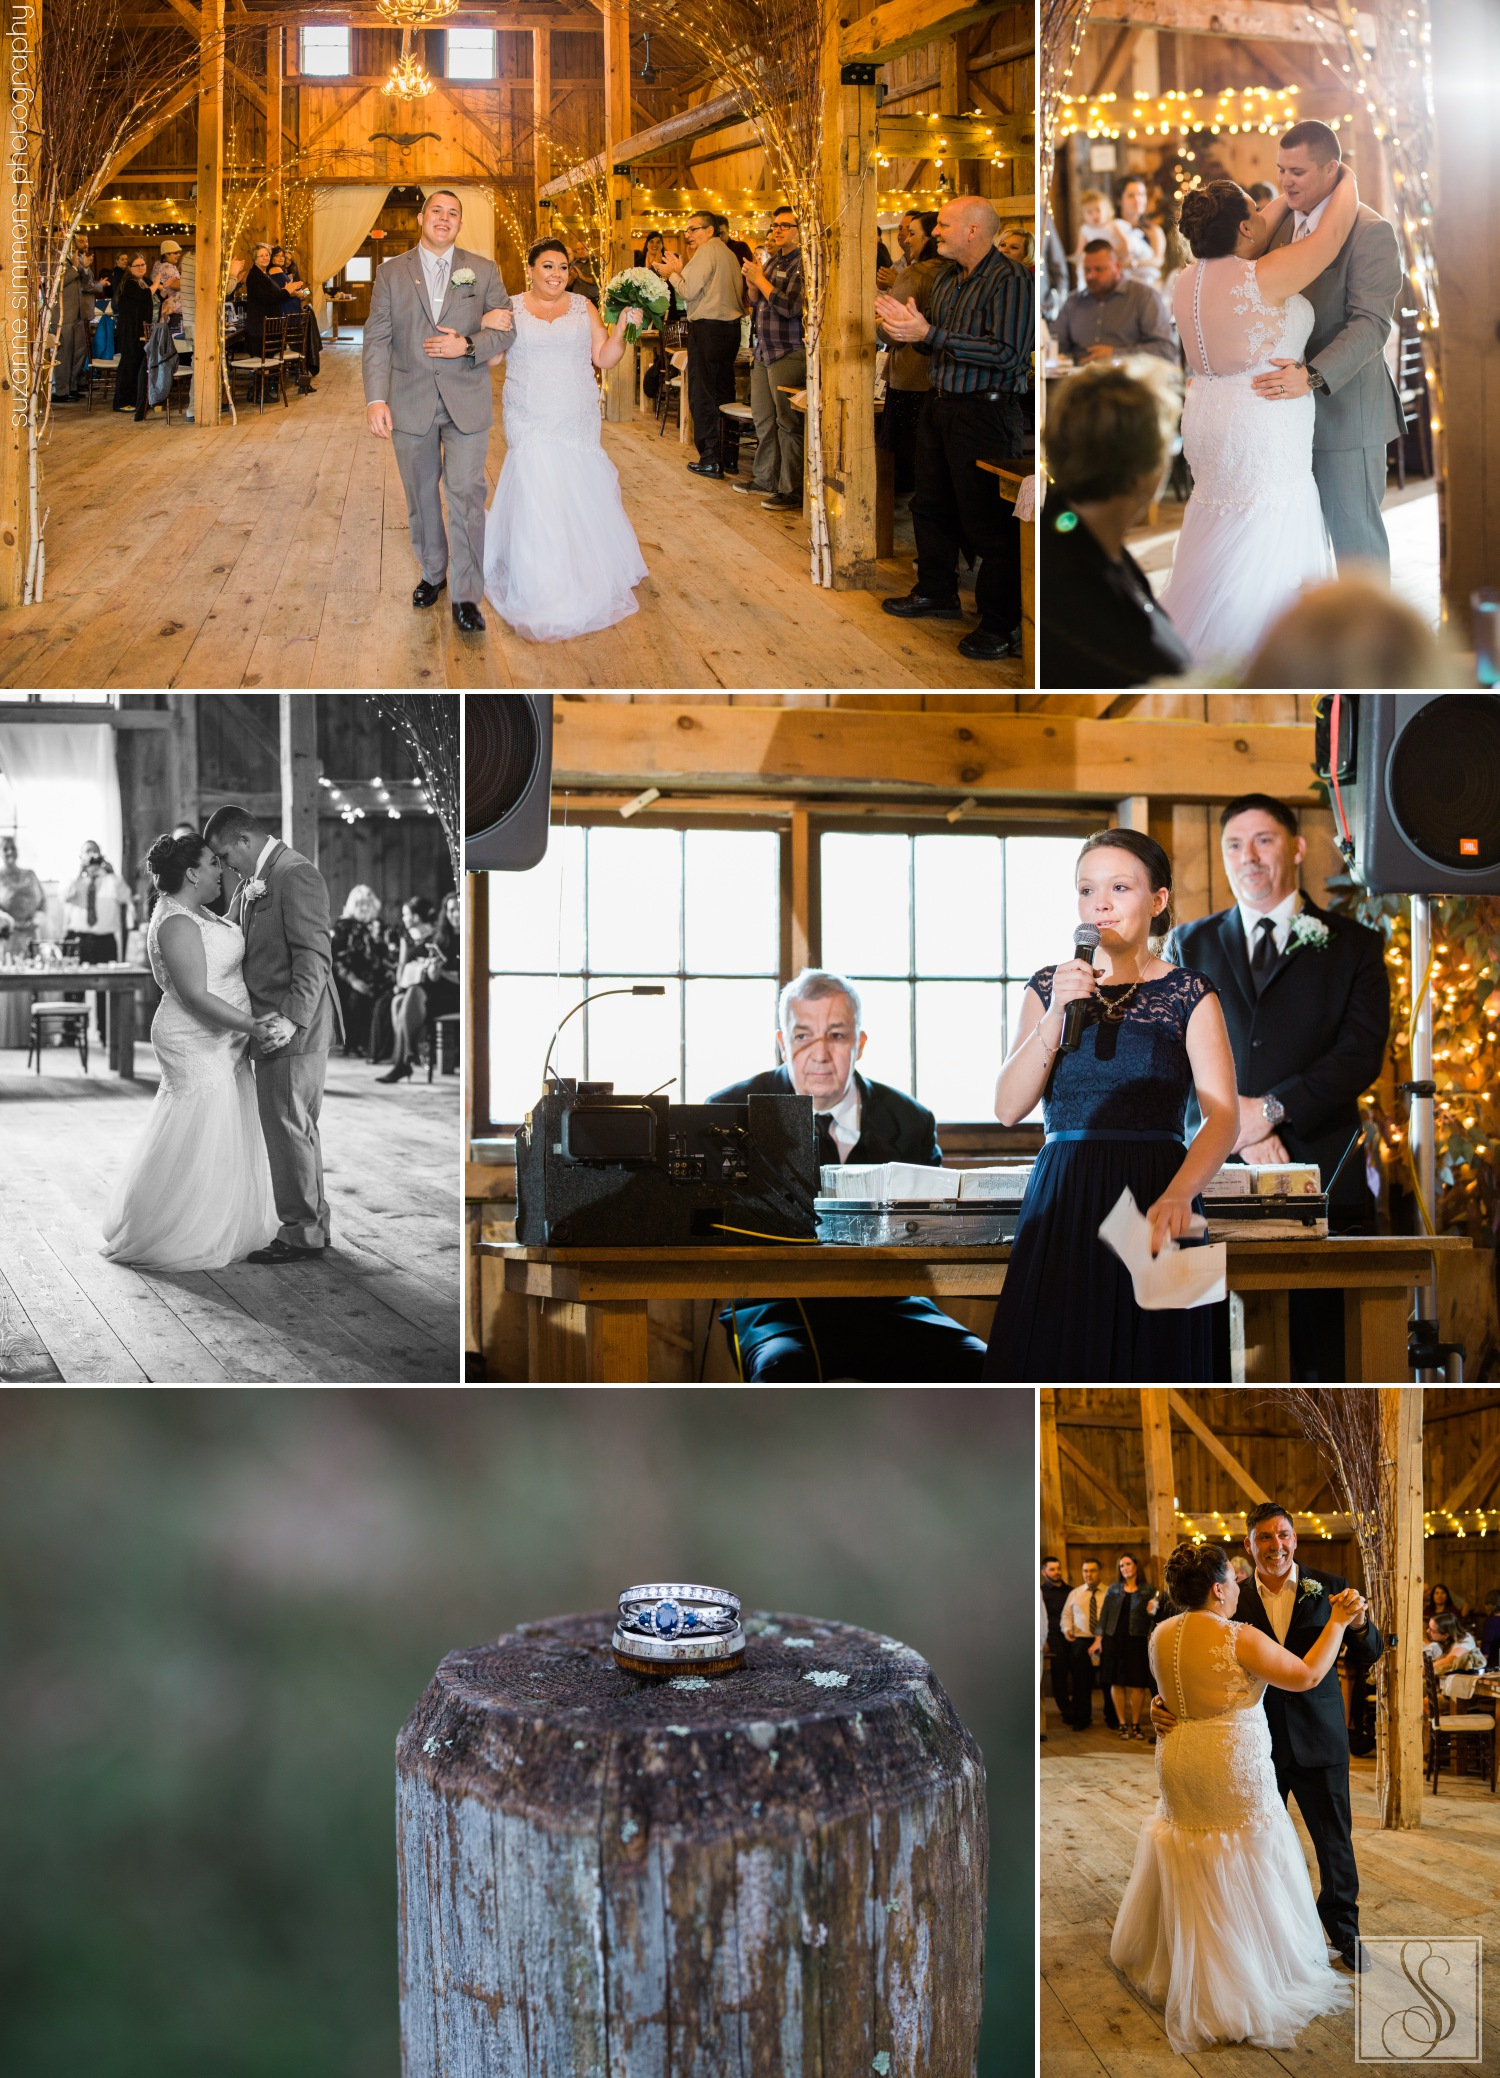 Wedding reception at The Hitching Post